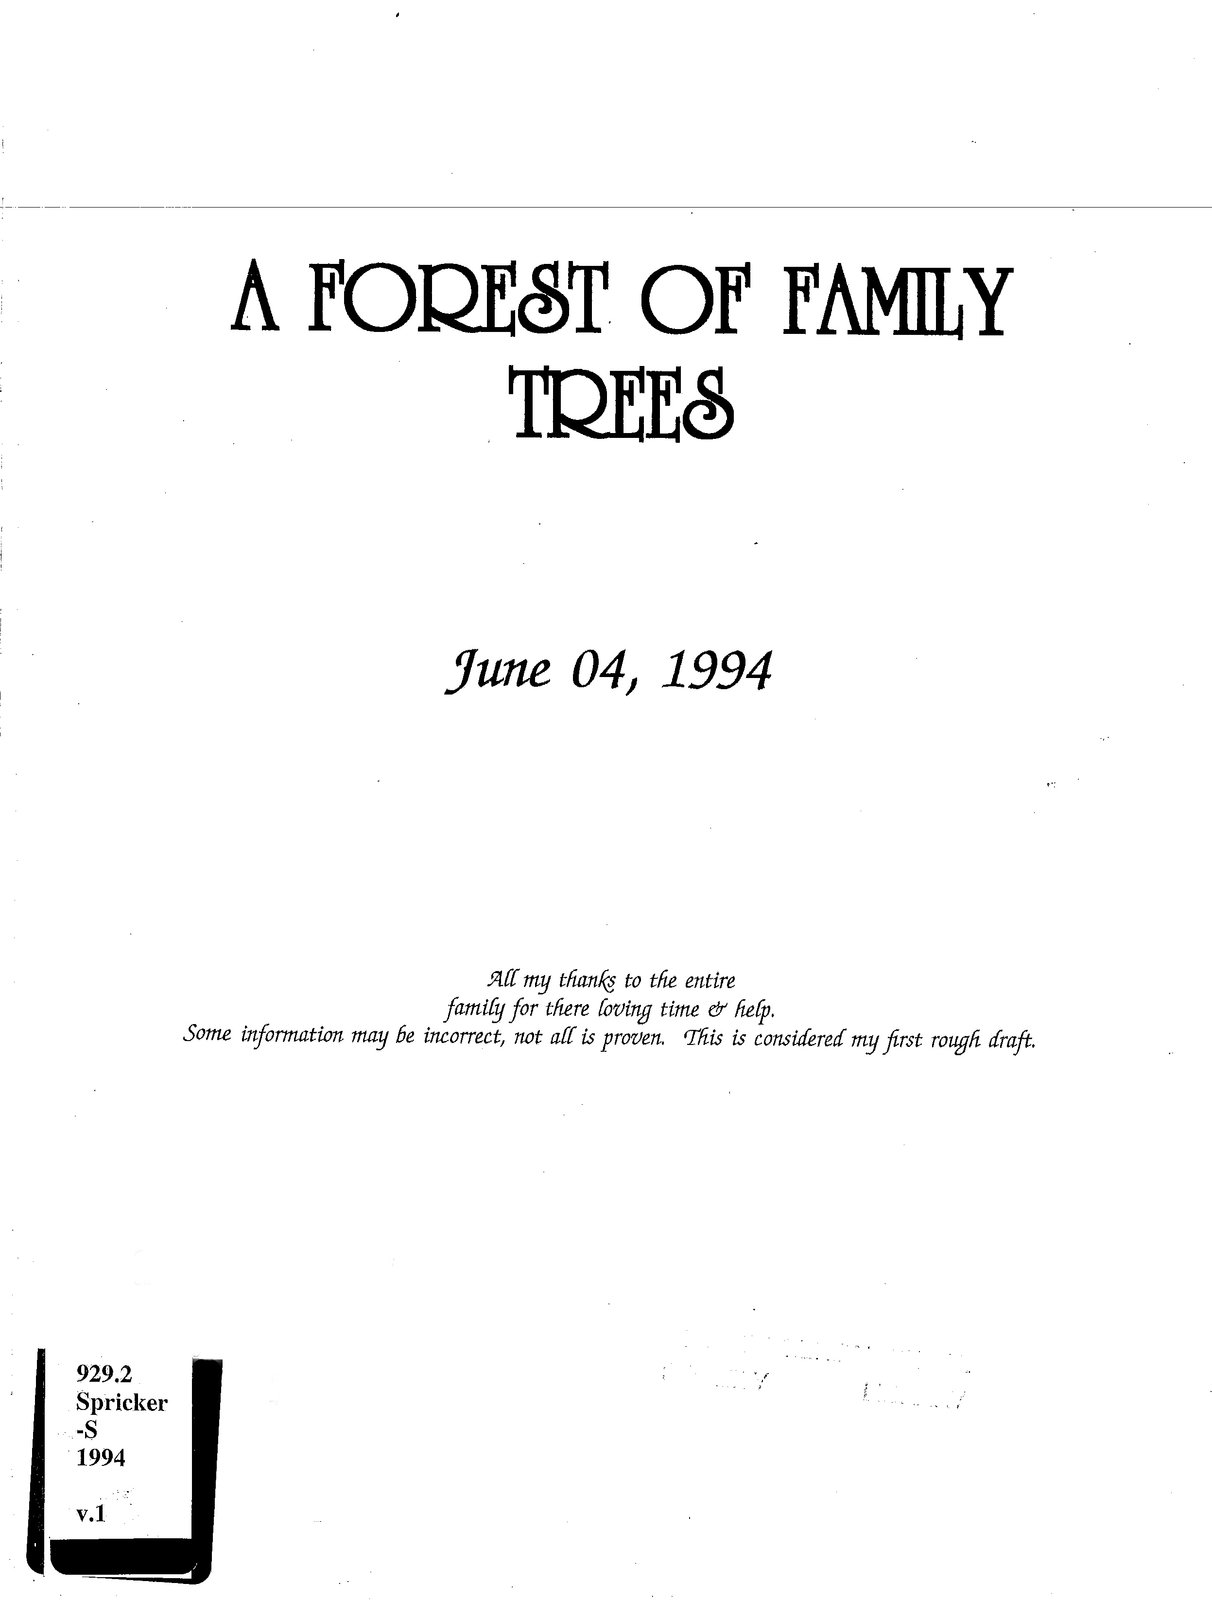 A forest of family trees